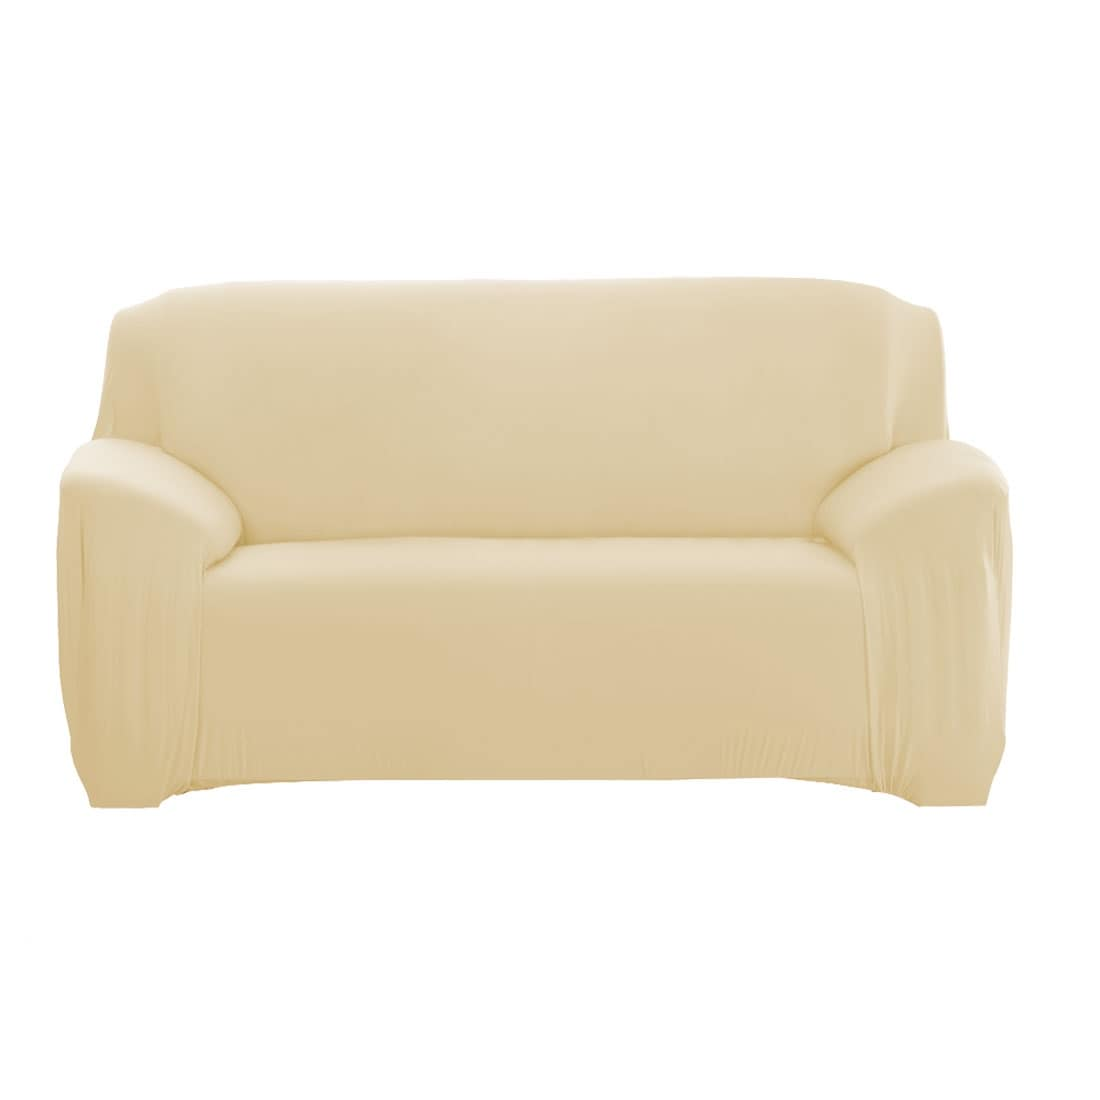 Stretch 1 2 3 Seats Sofa Chair Cover Loveseat Couch Slipcover Solid Color On Free Shipping Orders Over 45 16823911